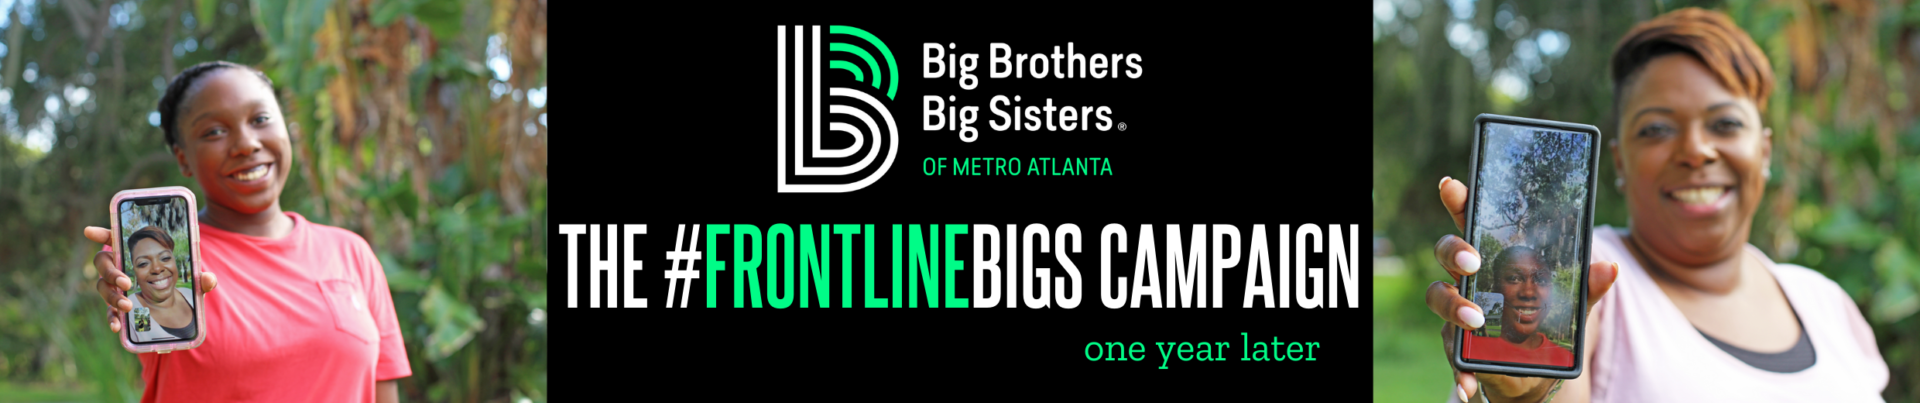 The #FrontlineBigs Campaign